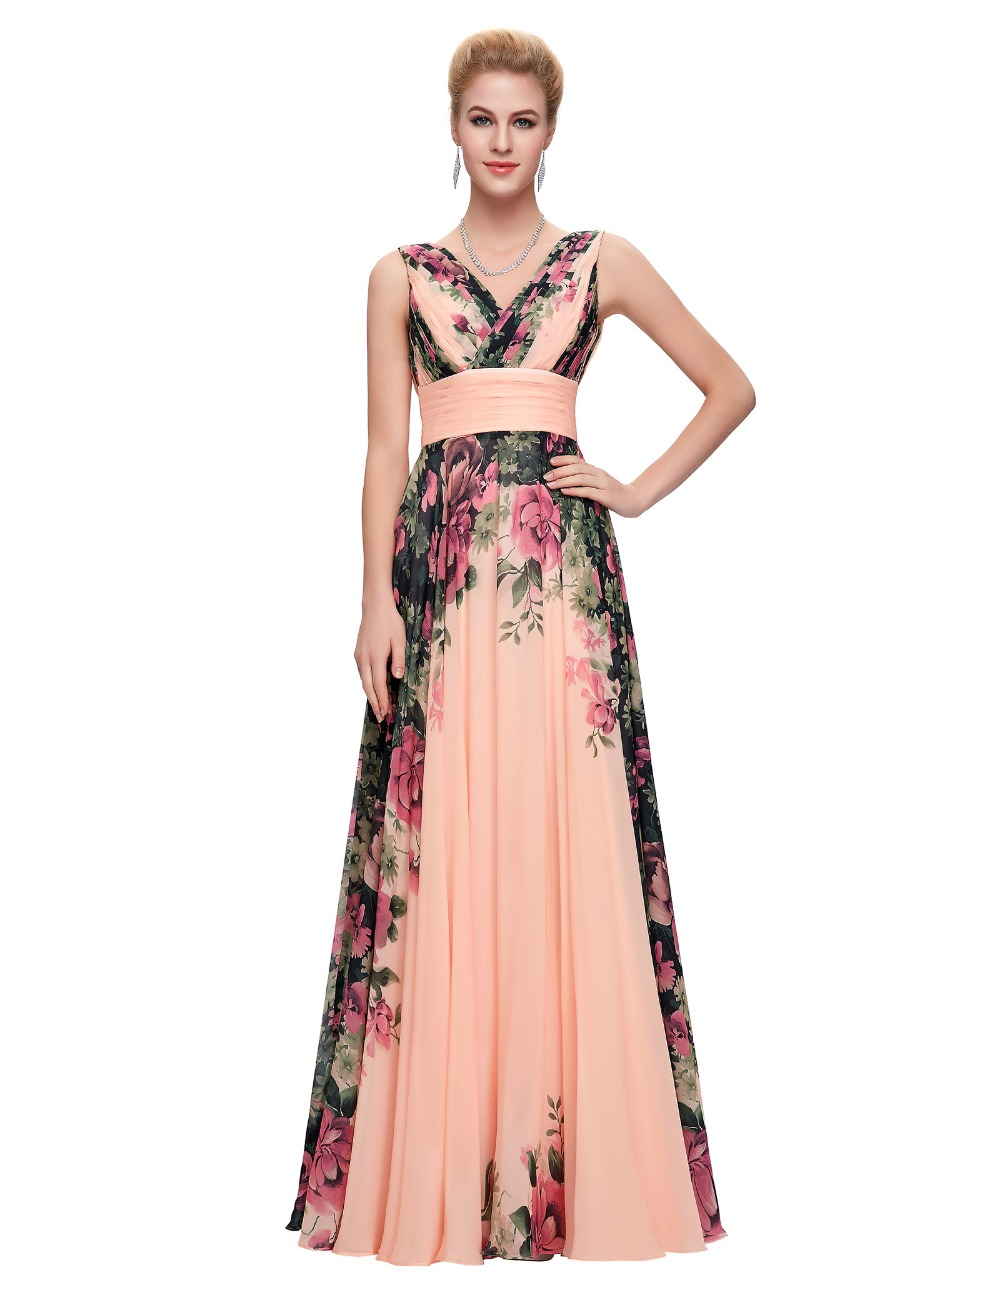 Aliexpress.com : Buy European Floor Length Summer Dress ...